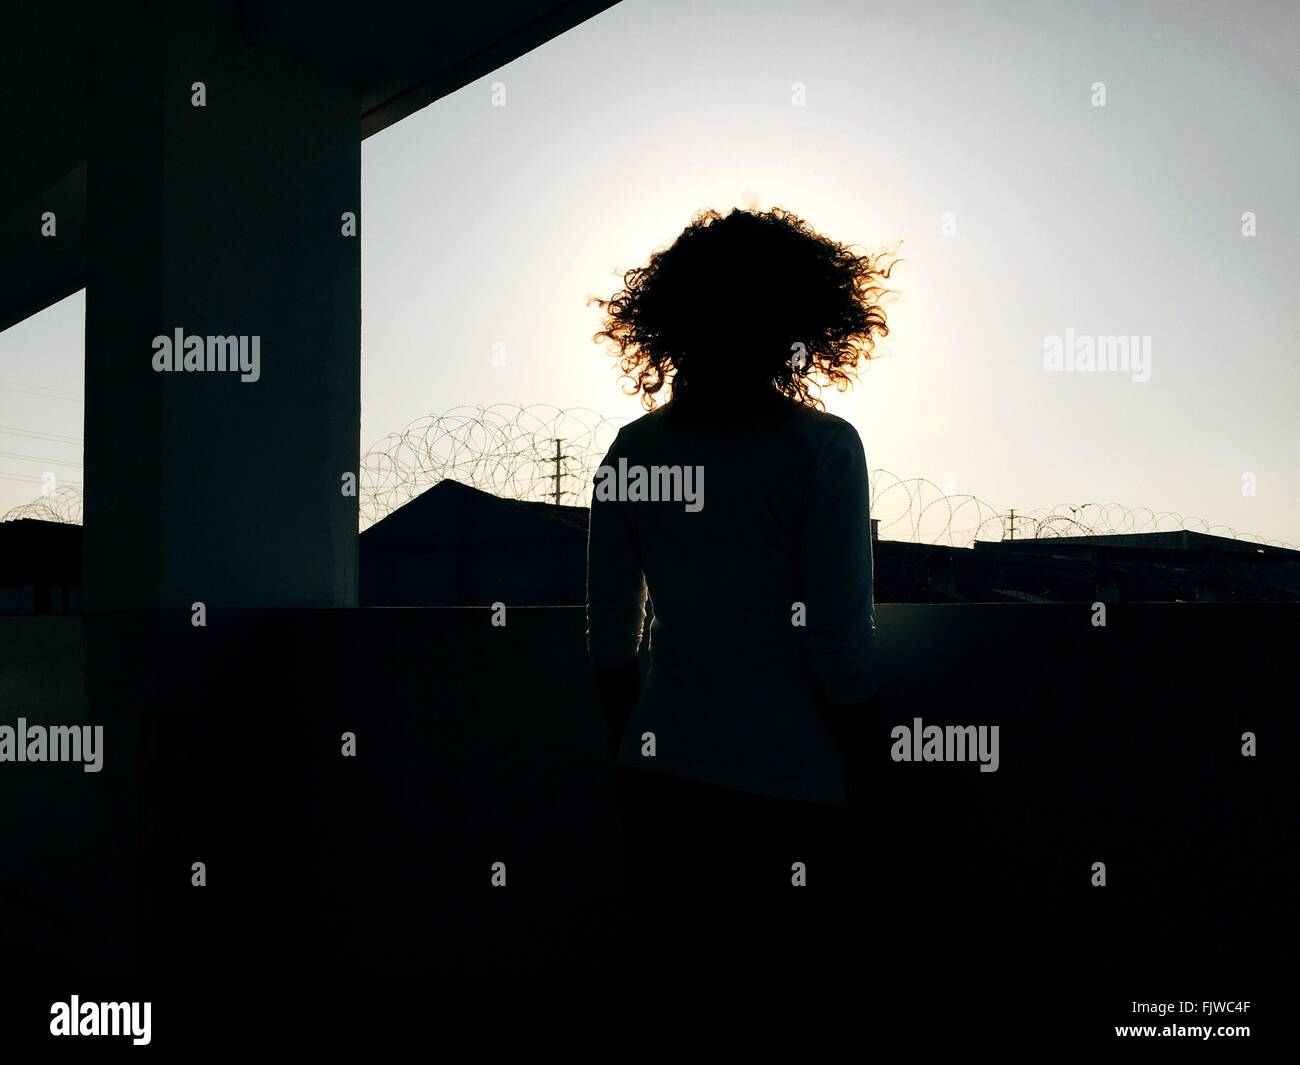 Rear View Woman With Curly Hair Standing Below Bridge Against Sky - Stock Image